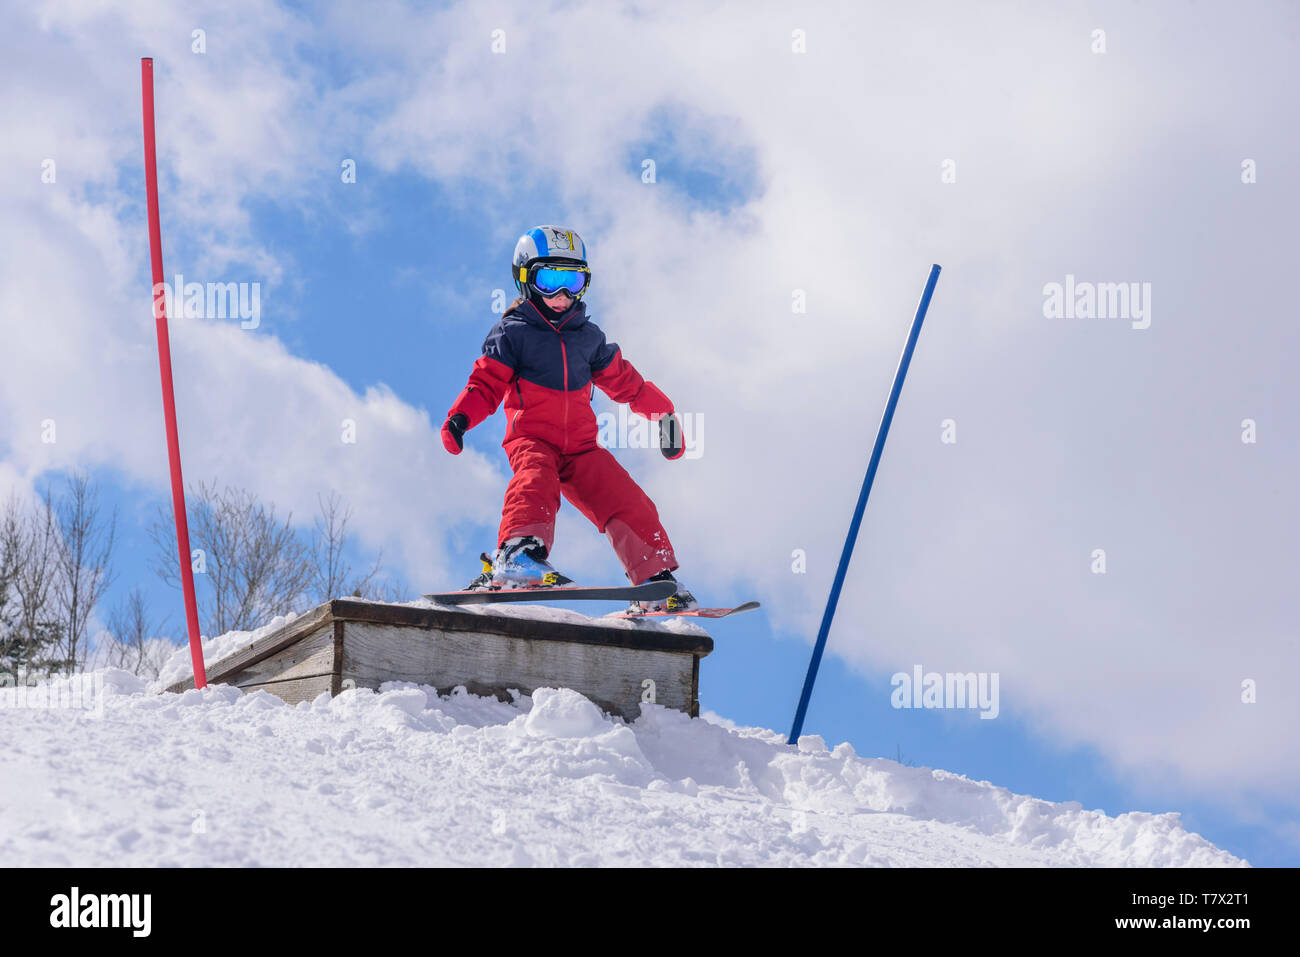 brave young boy jumping courageous from a wooden ramp - Stock Image